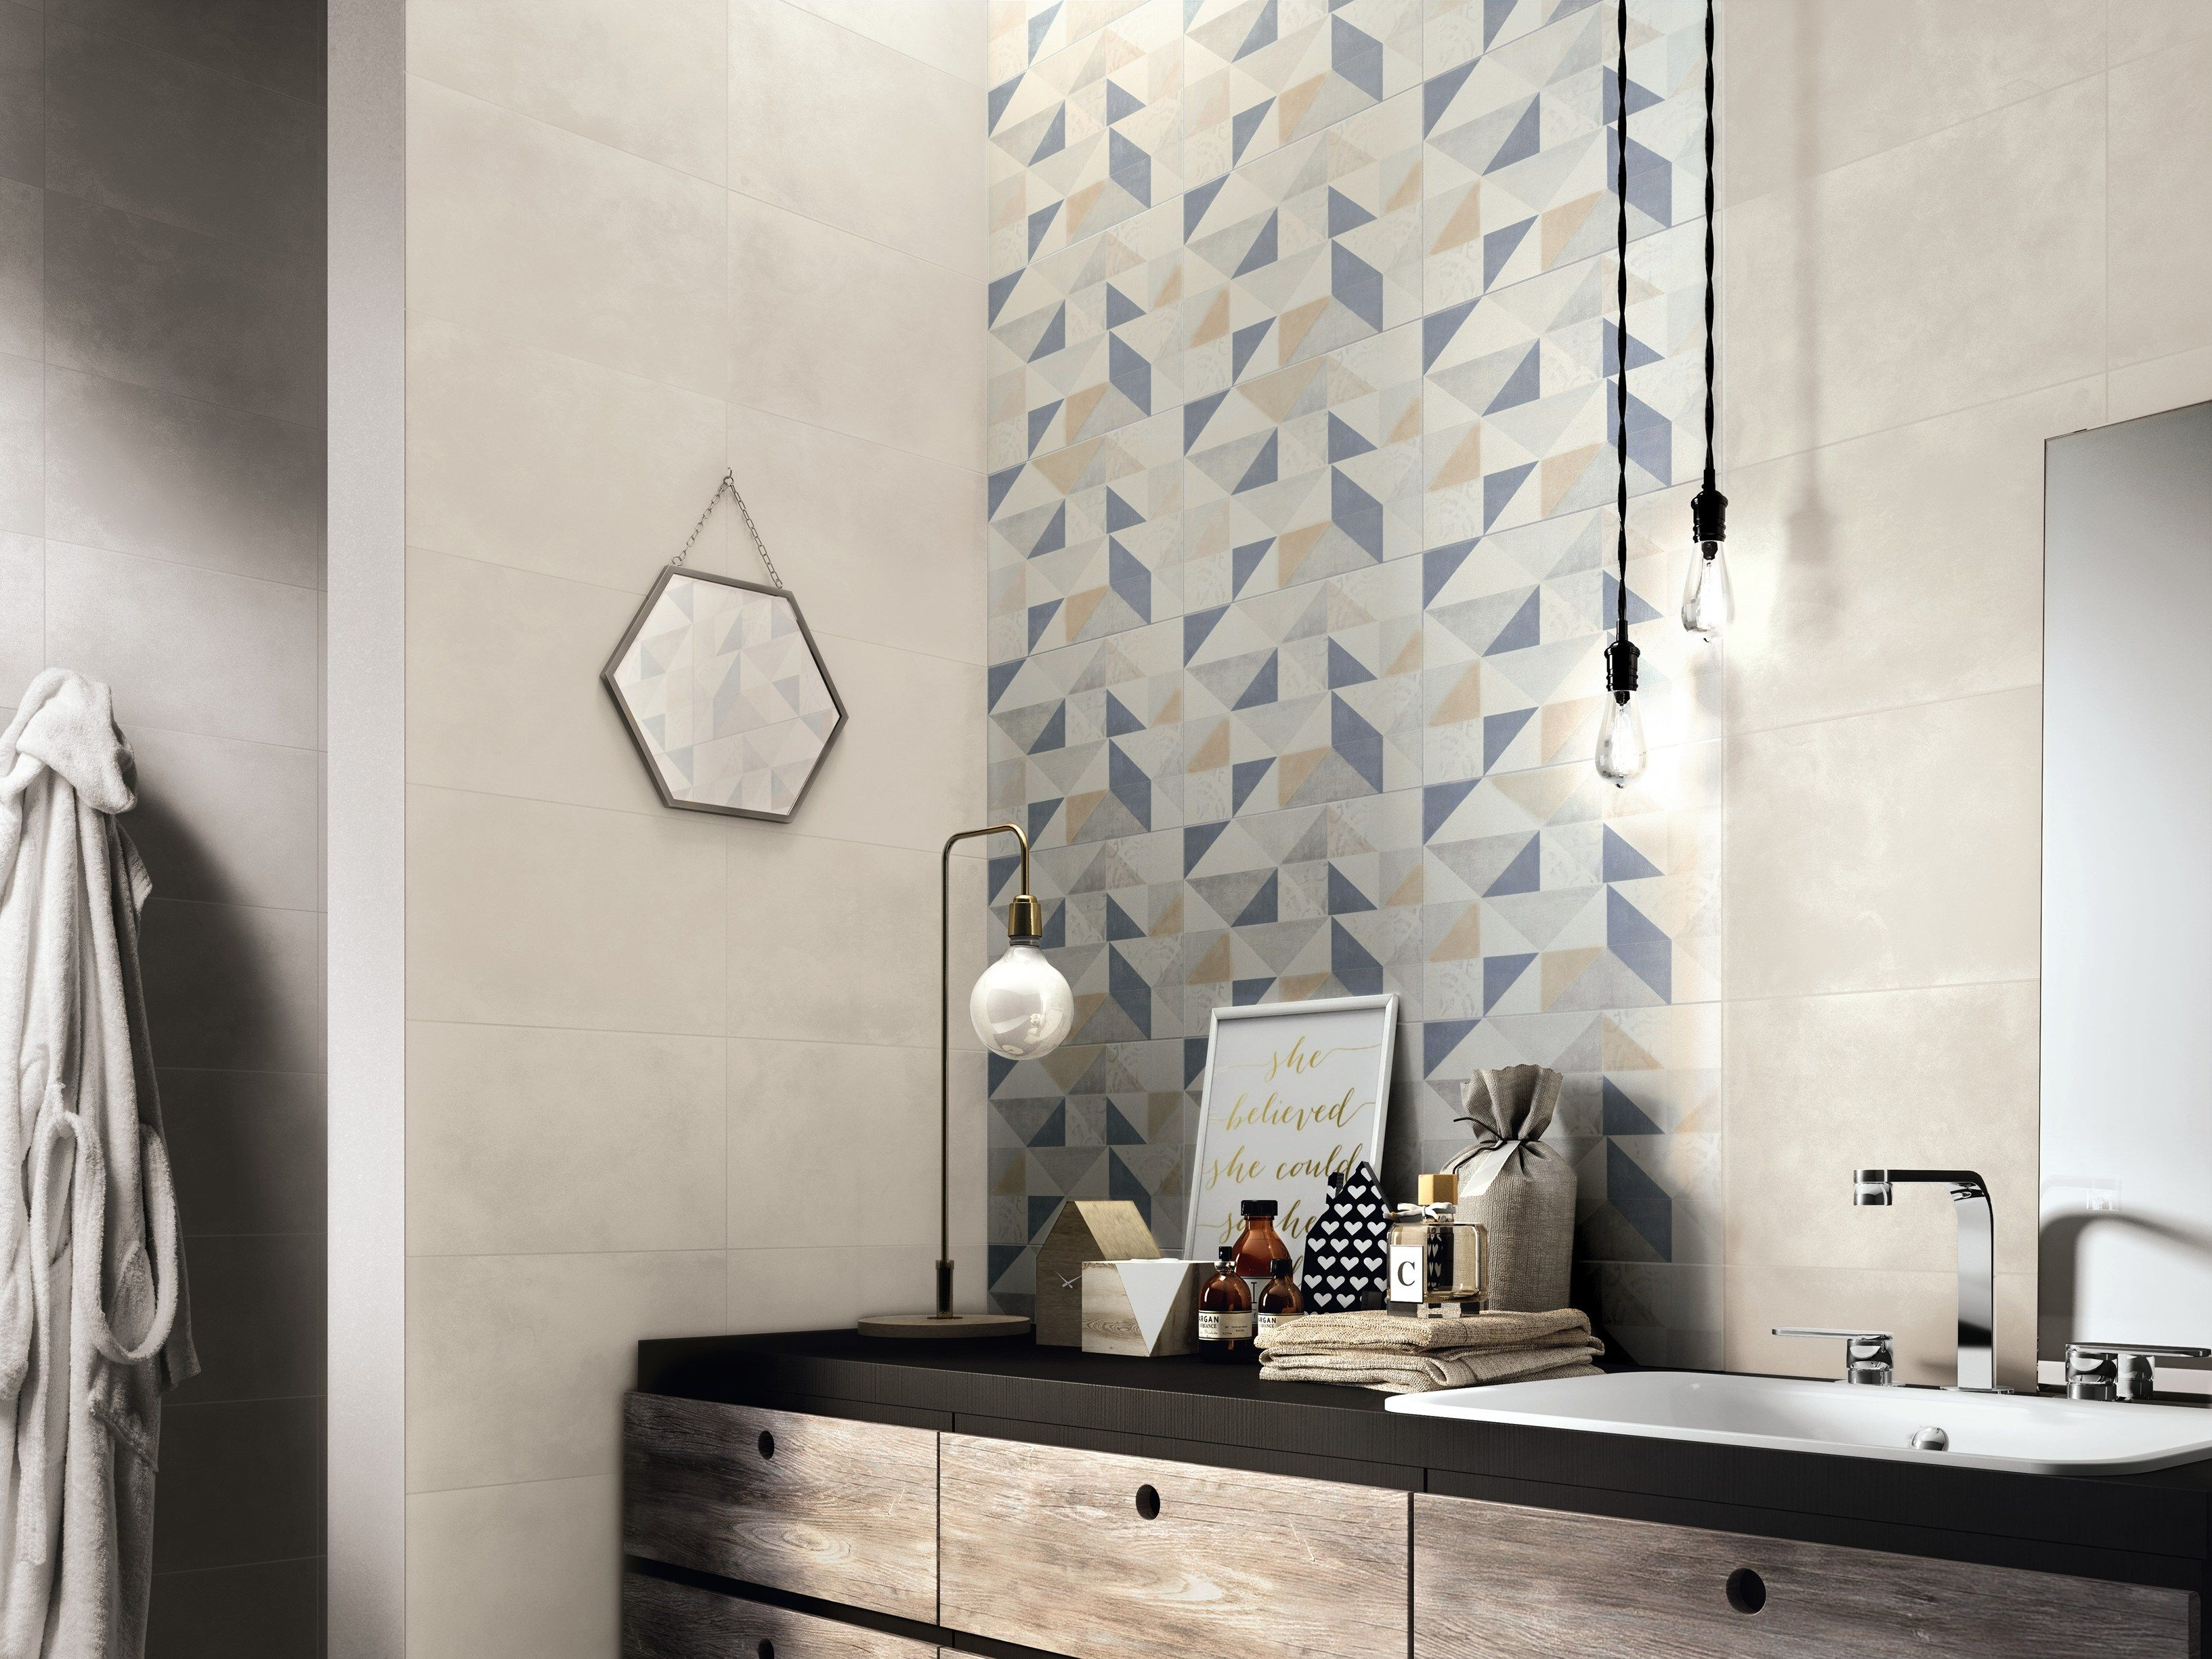 Indoor white-paste wall tiles FEEL by Ragno | Surfaces & Materials ...